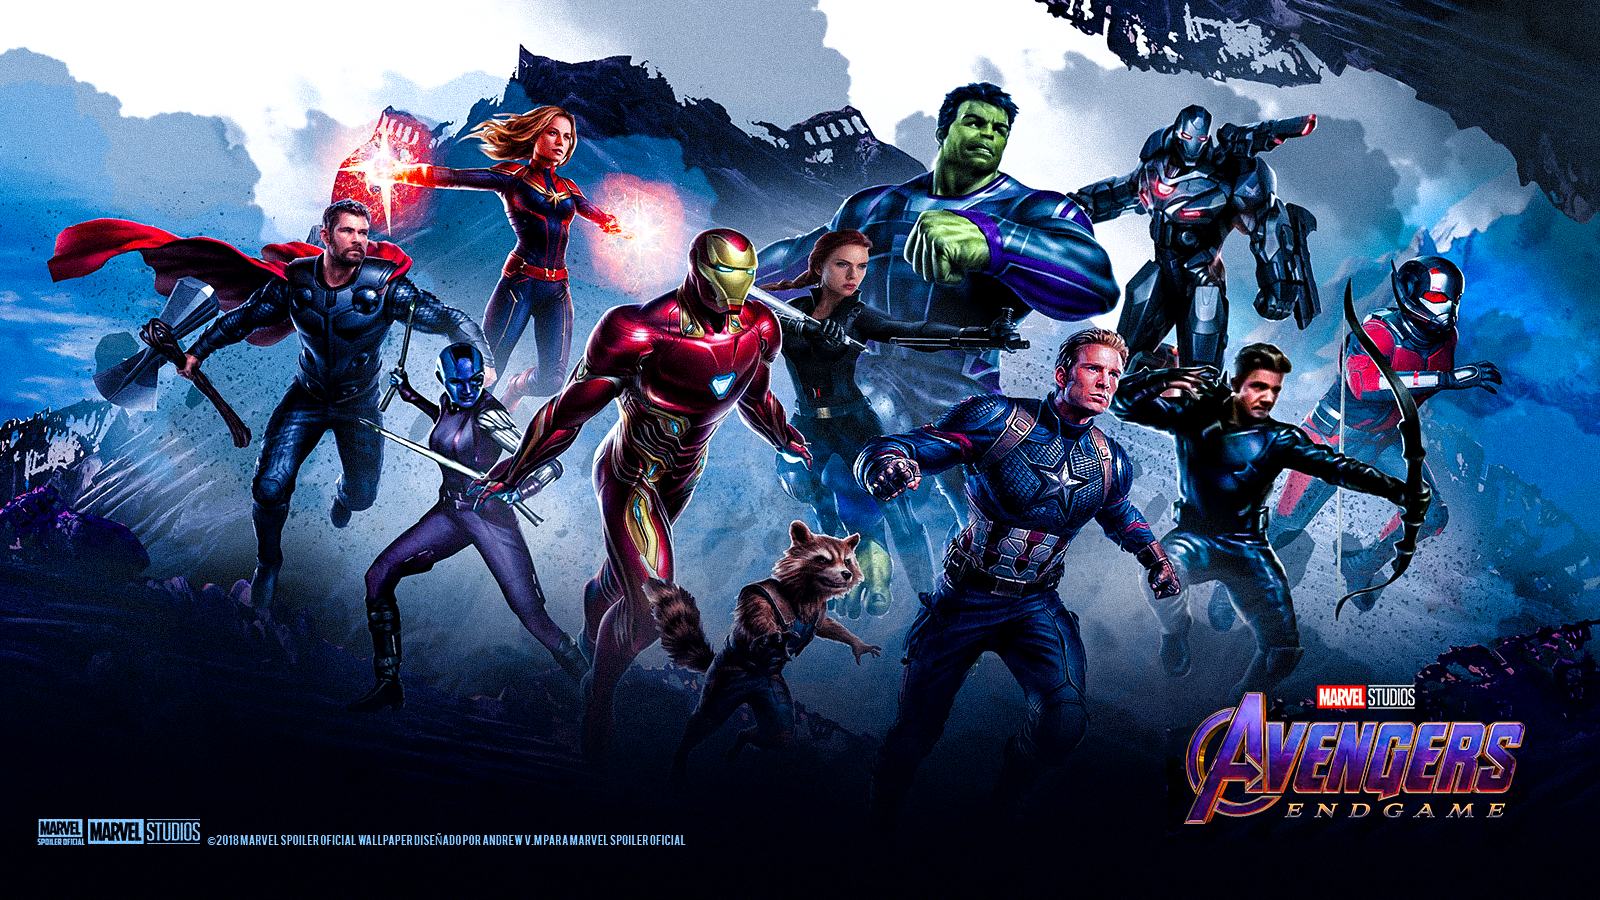 Avengers 4 End Game And Infinity War Hd Wallpapers Download